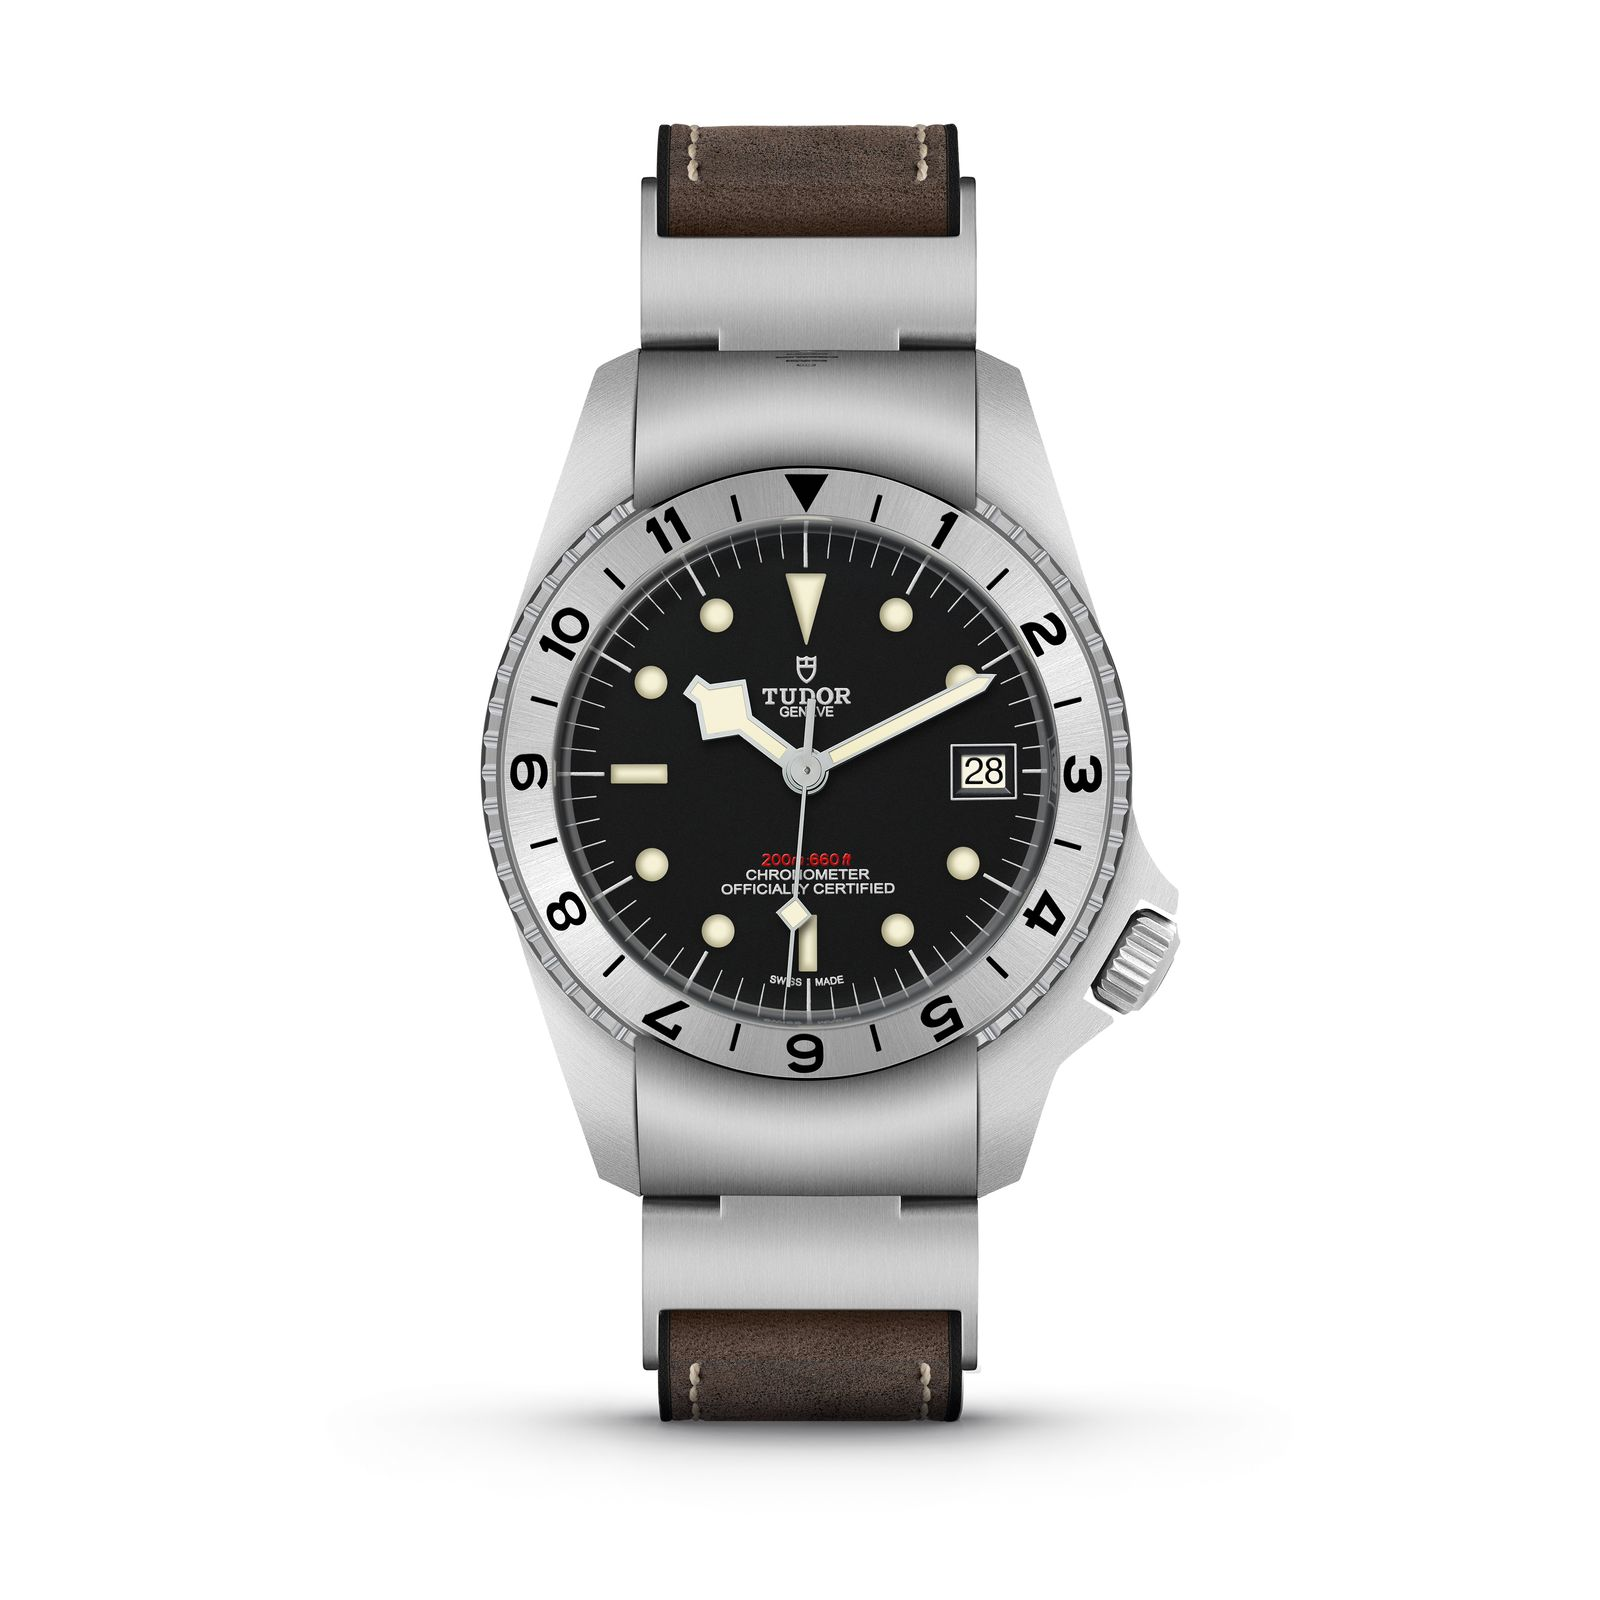 Tudor Black Bay P01 Baselworld 2019